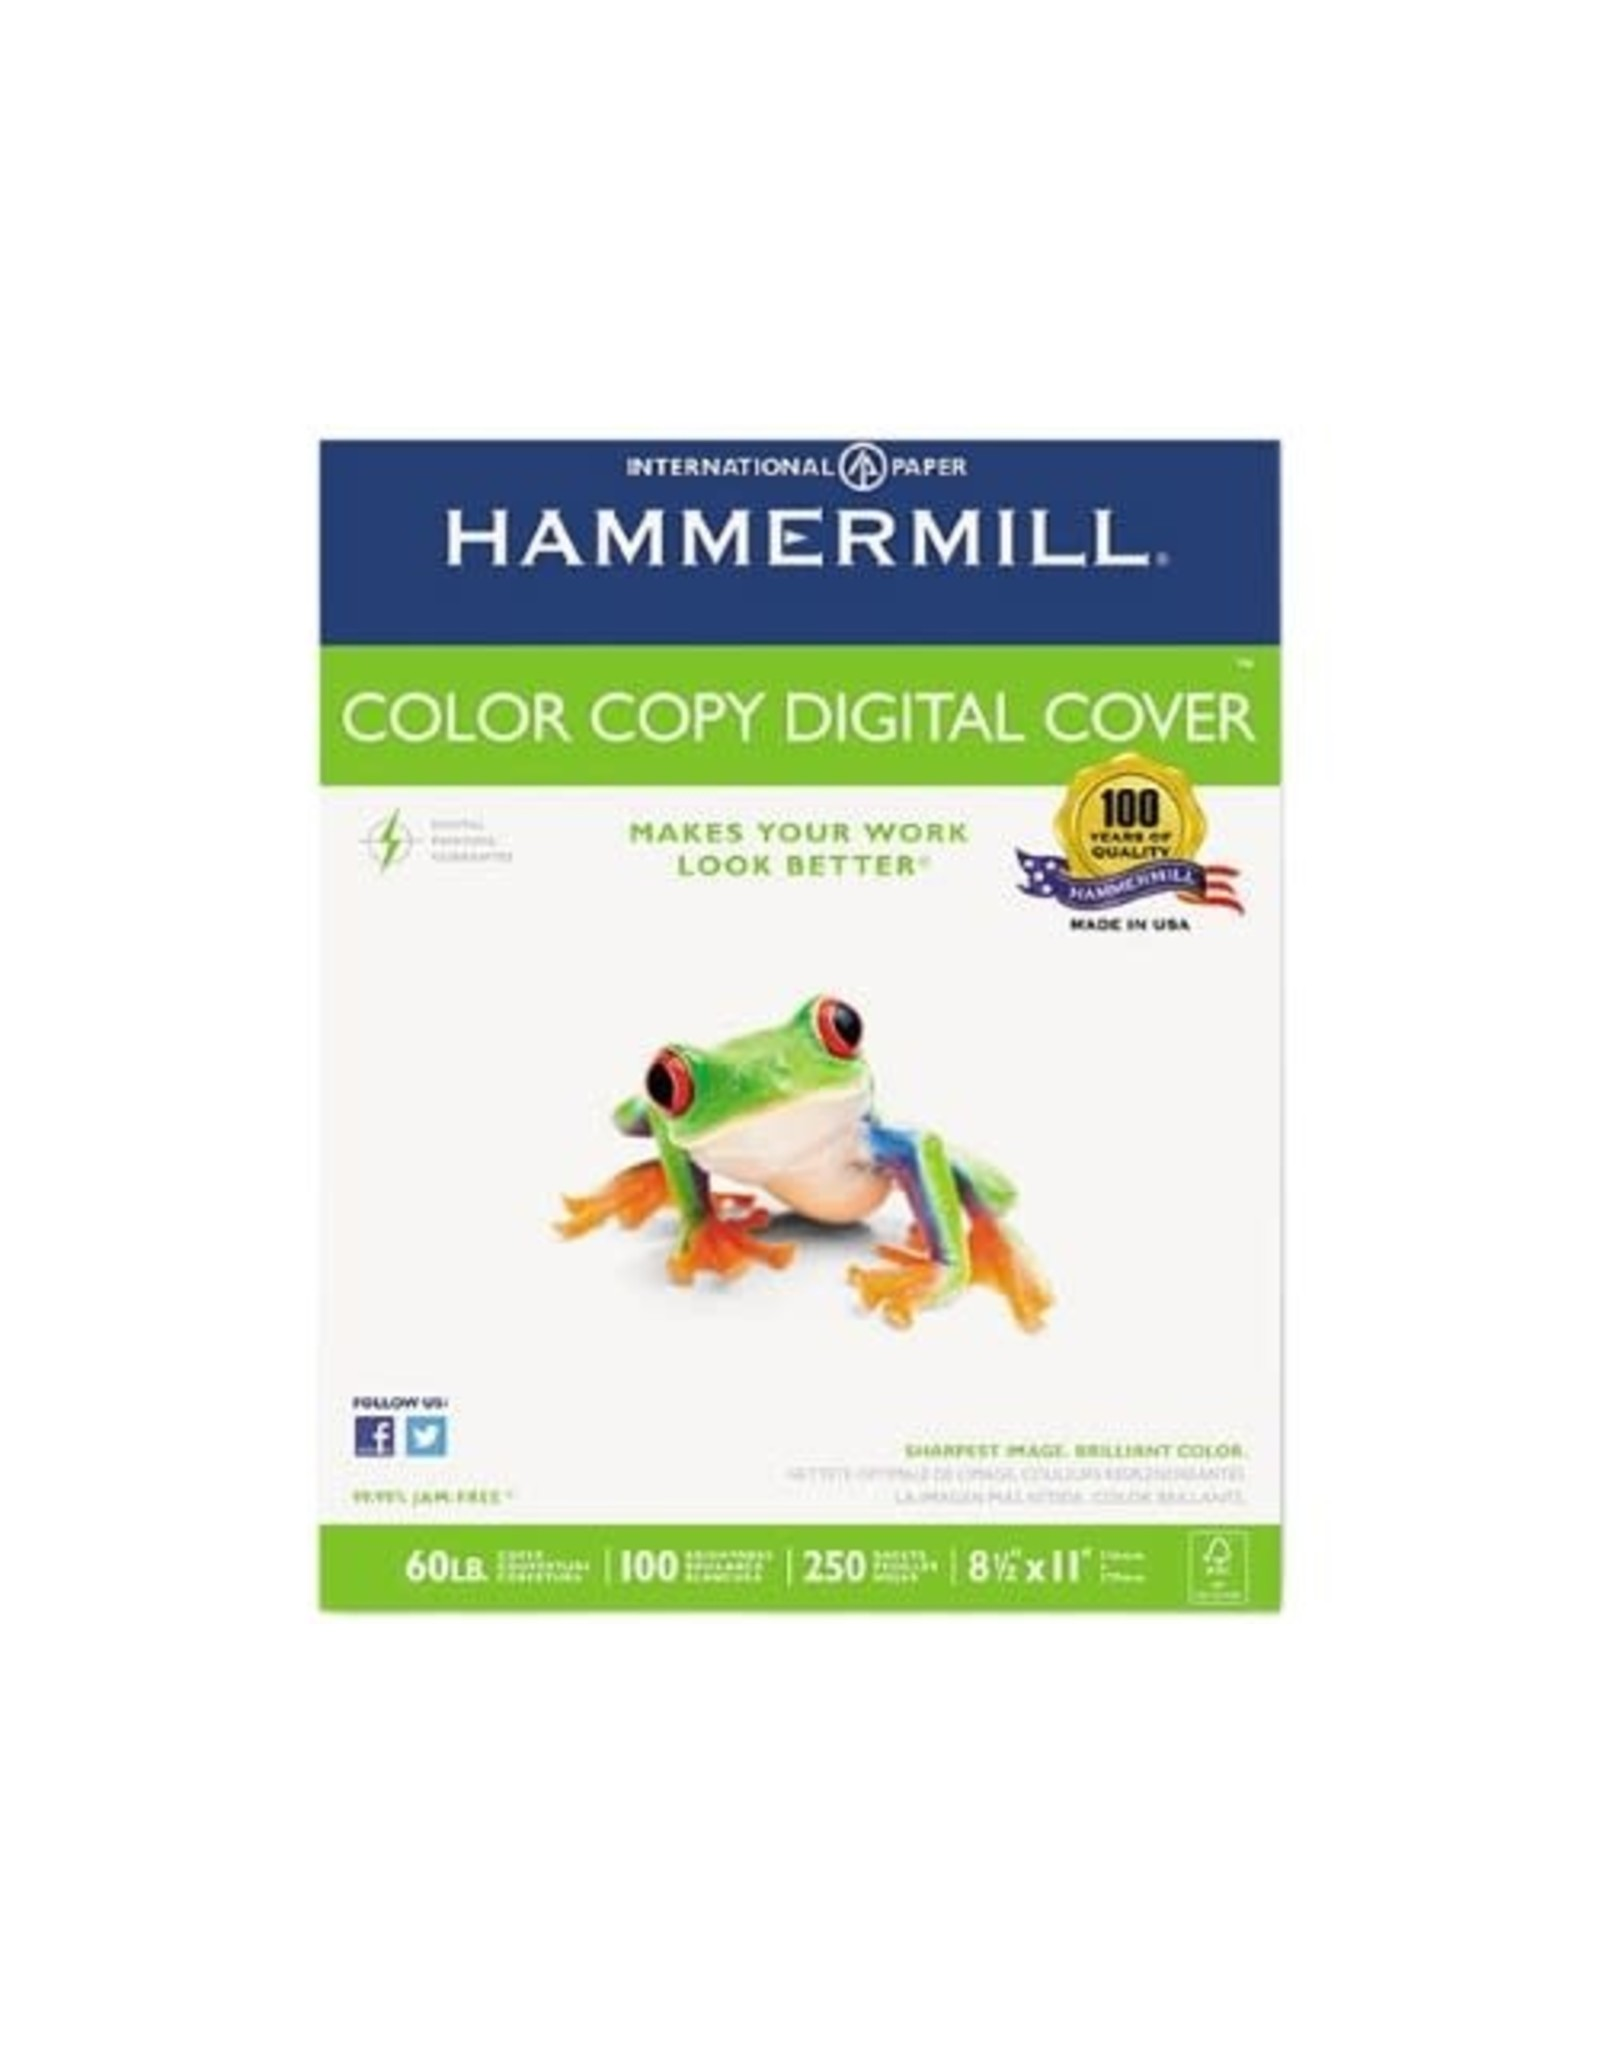 Spicers COVER STOCK-COLOR COPY DIGITAL LETTER 60LB 100 BRIGHT